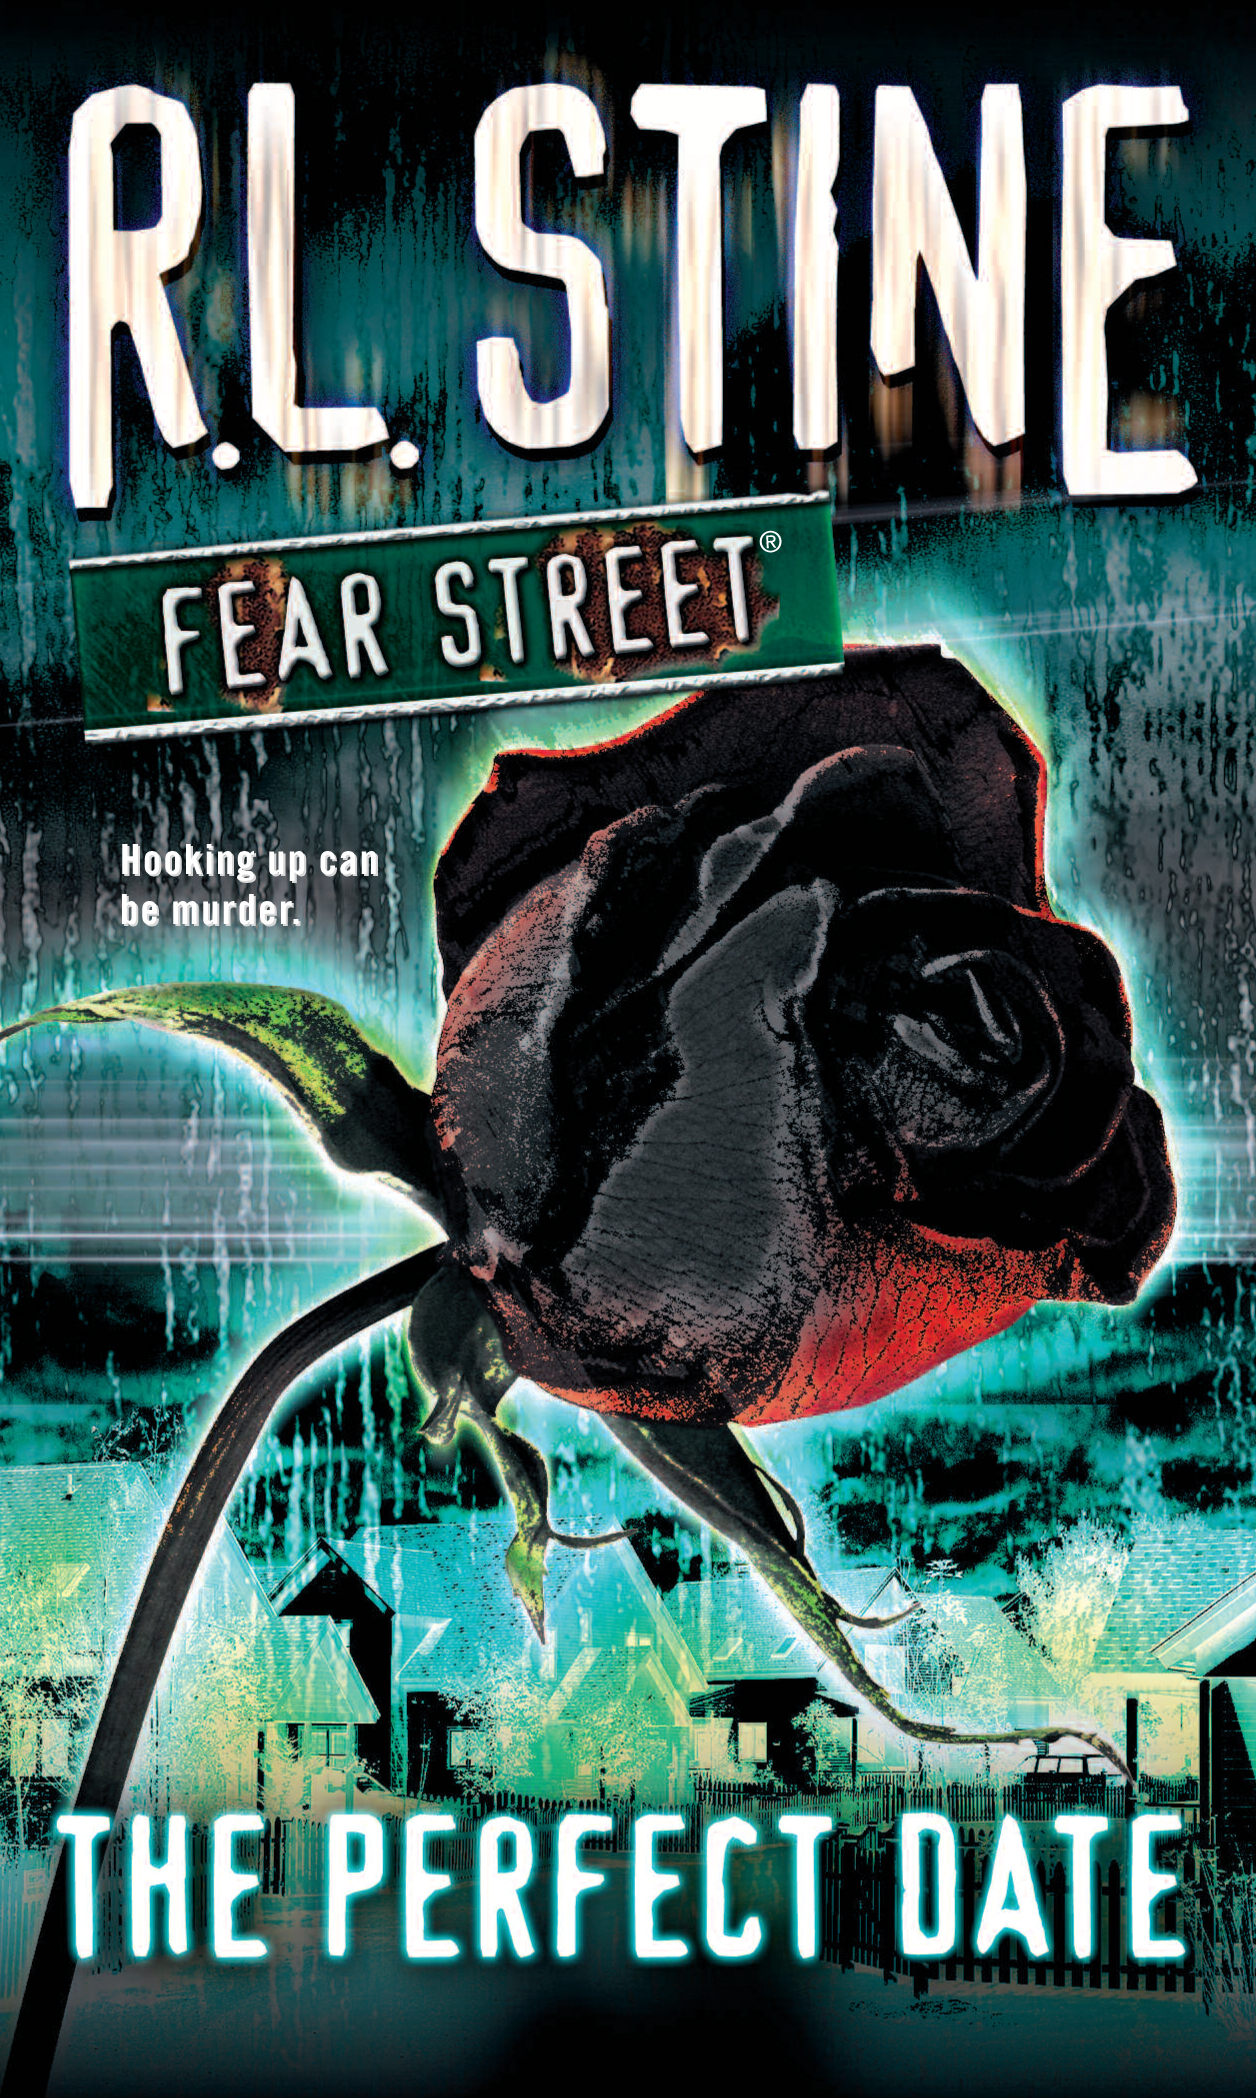 Fear Street Superchillers Books by R.L. Stine from Simon & Schuster